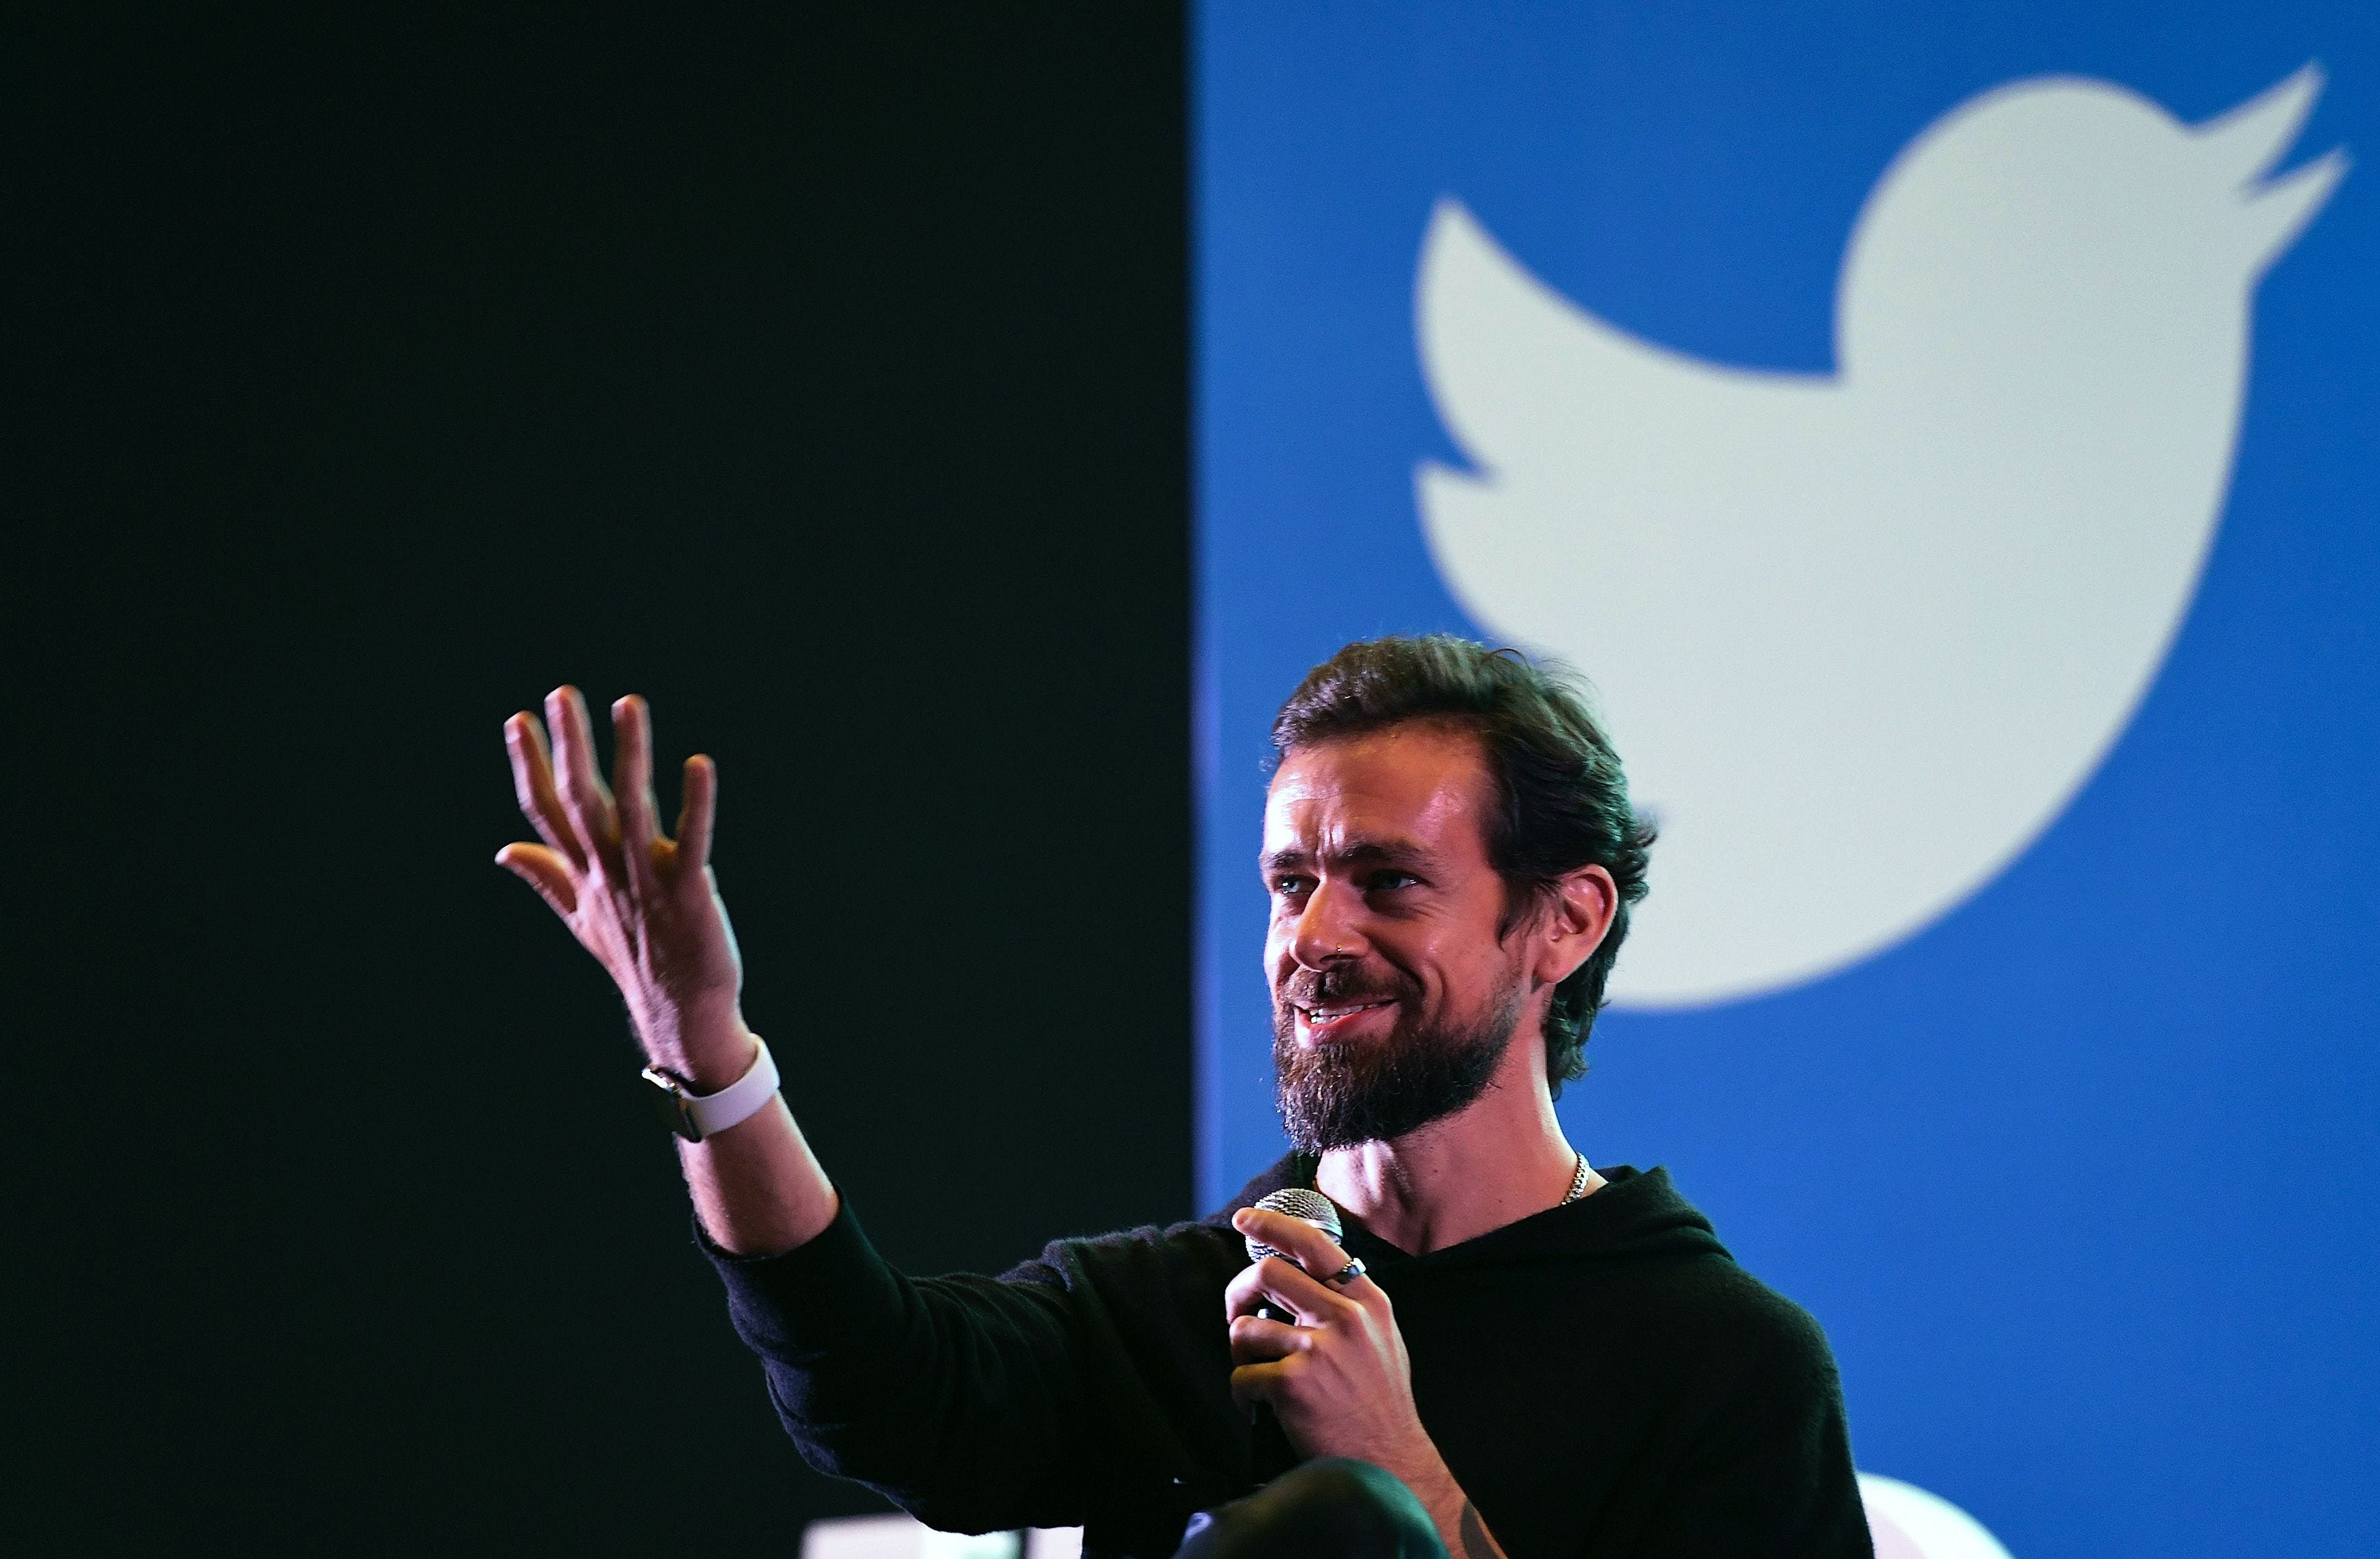 Twitter CEO Jack Dorsey's account hacked, but tweets now removed